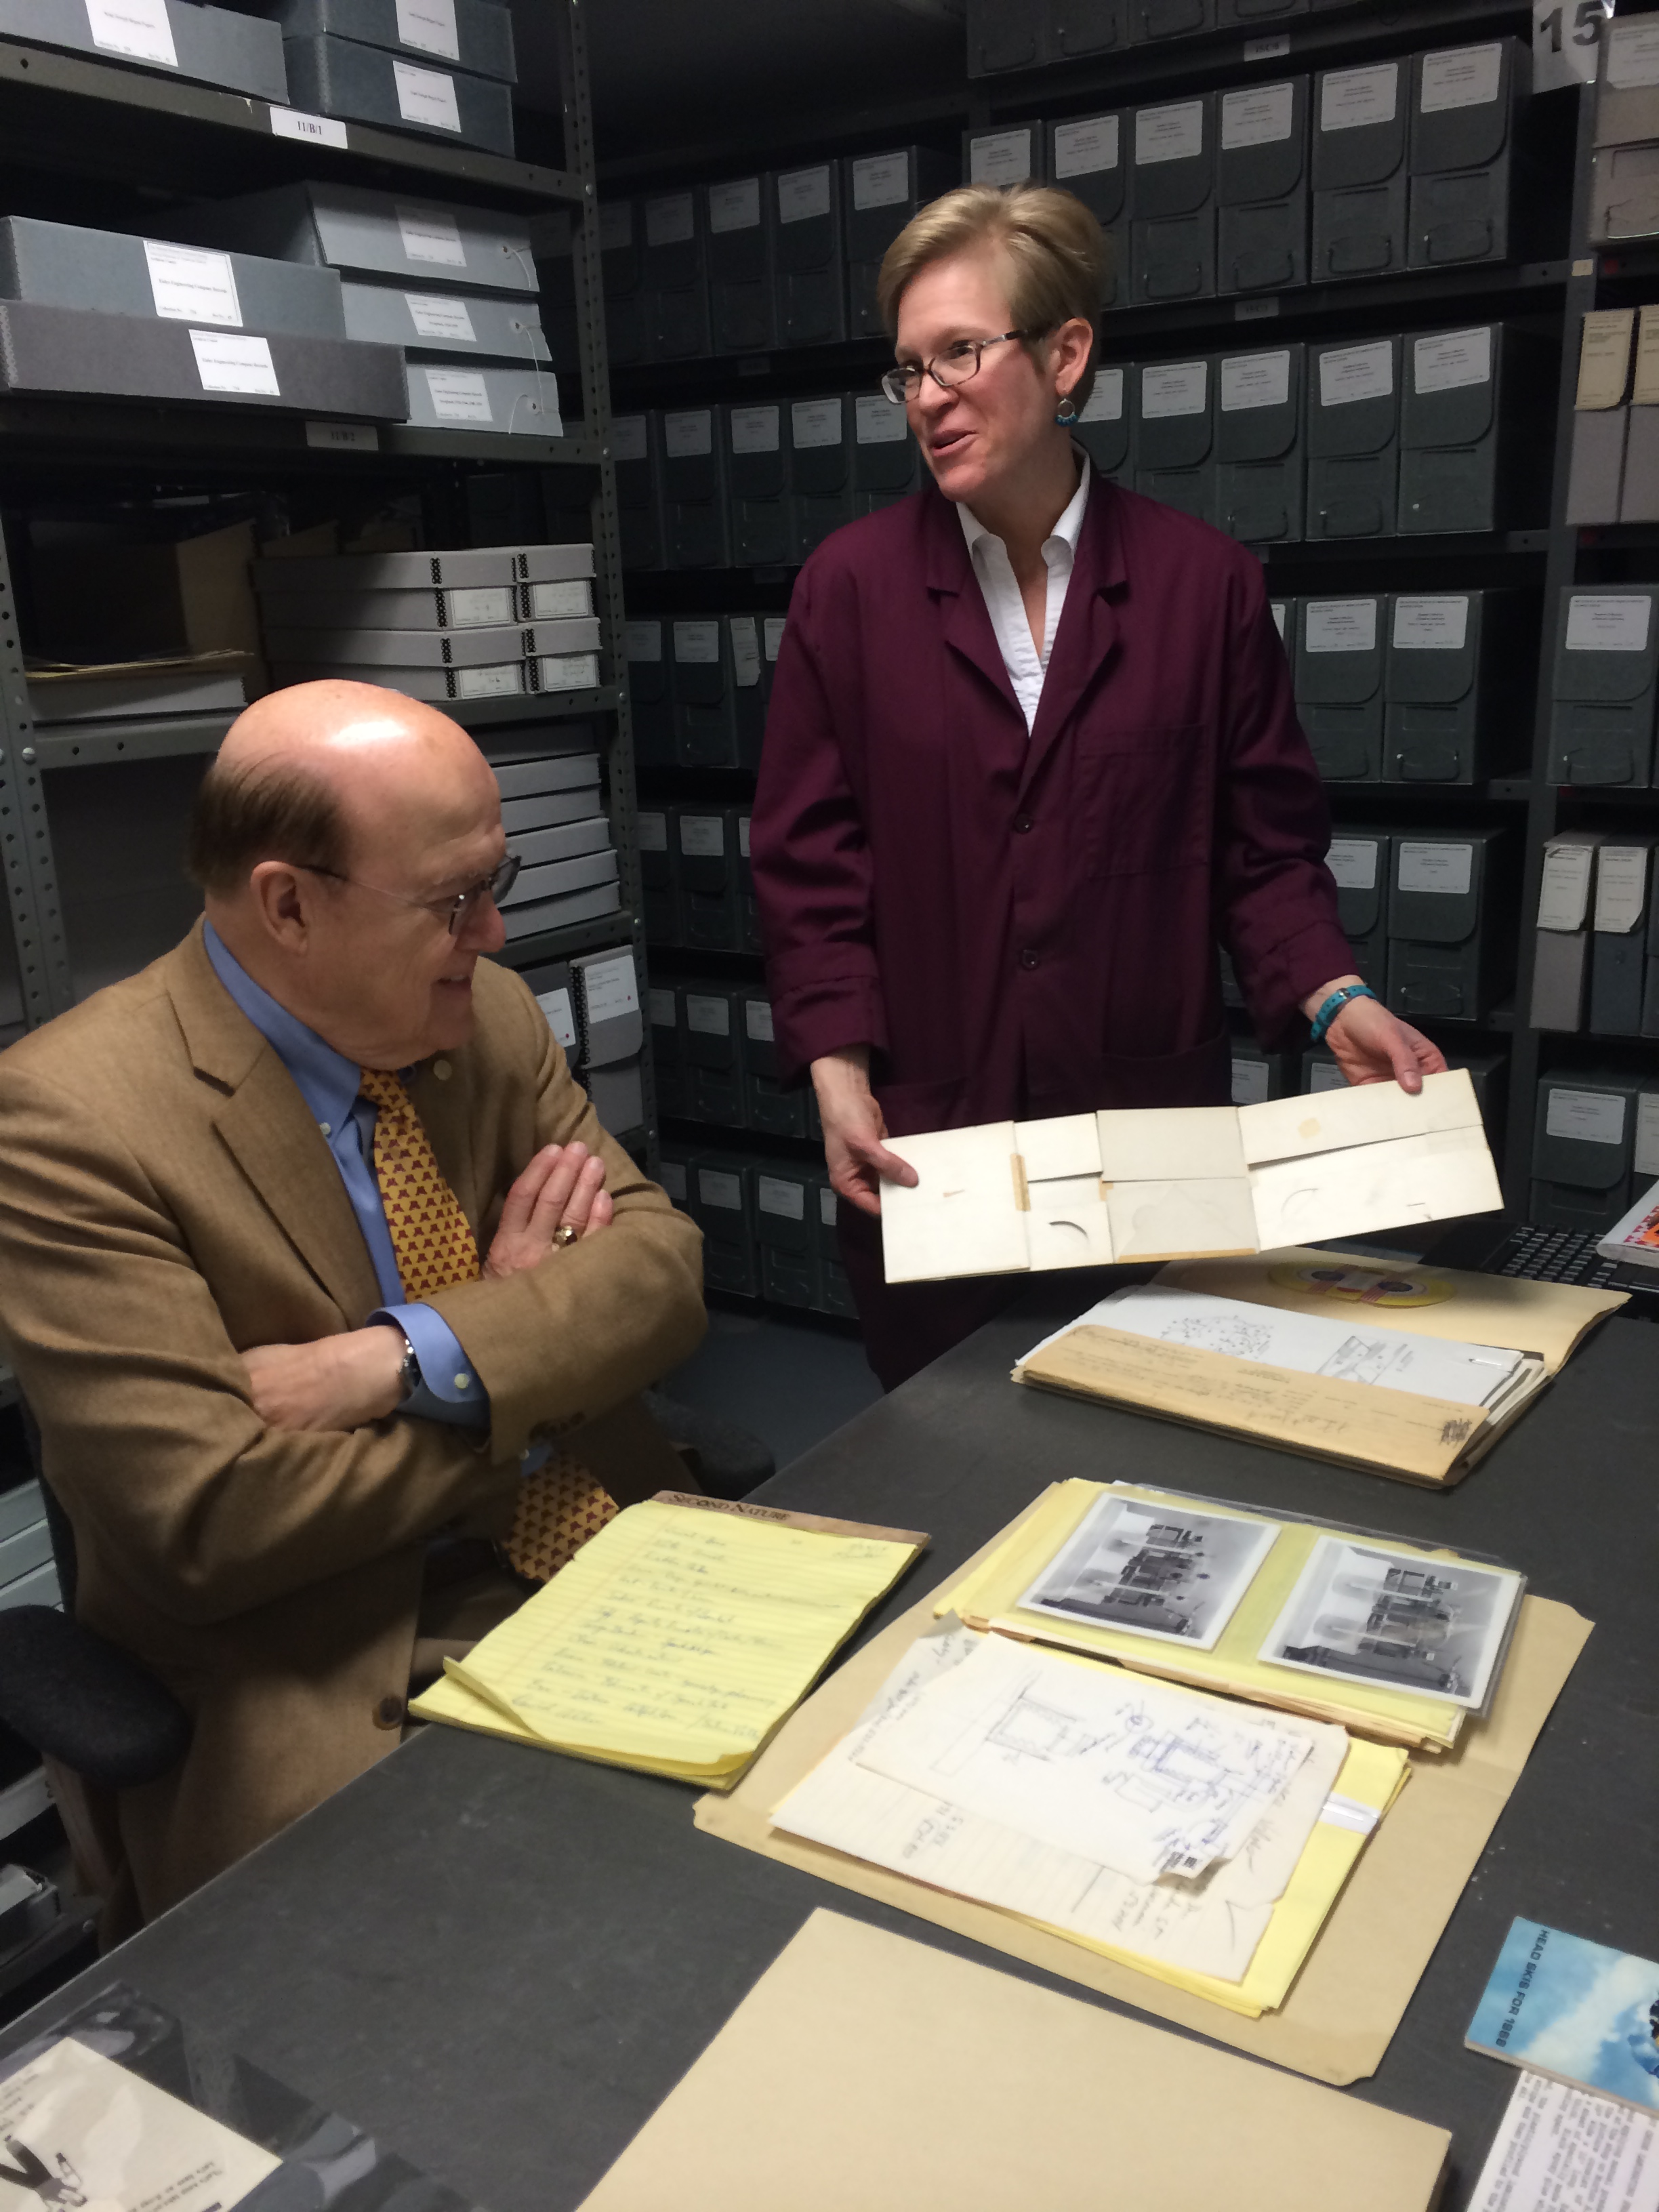 Archivist Alison Oswald shows Manny Villafana archival documents.